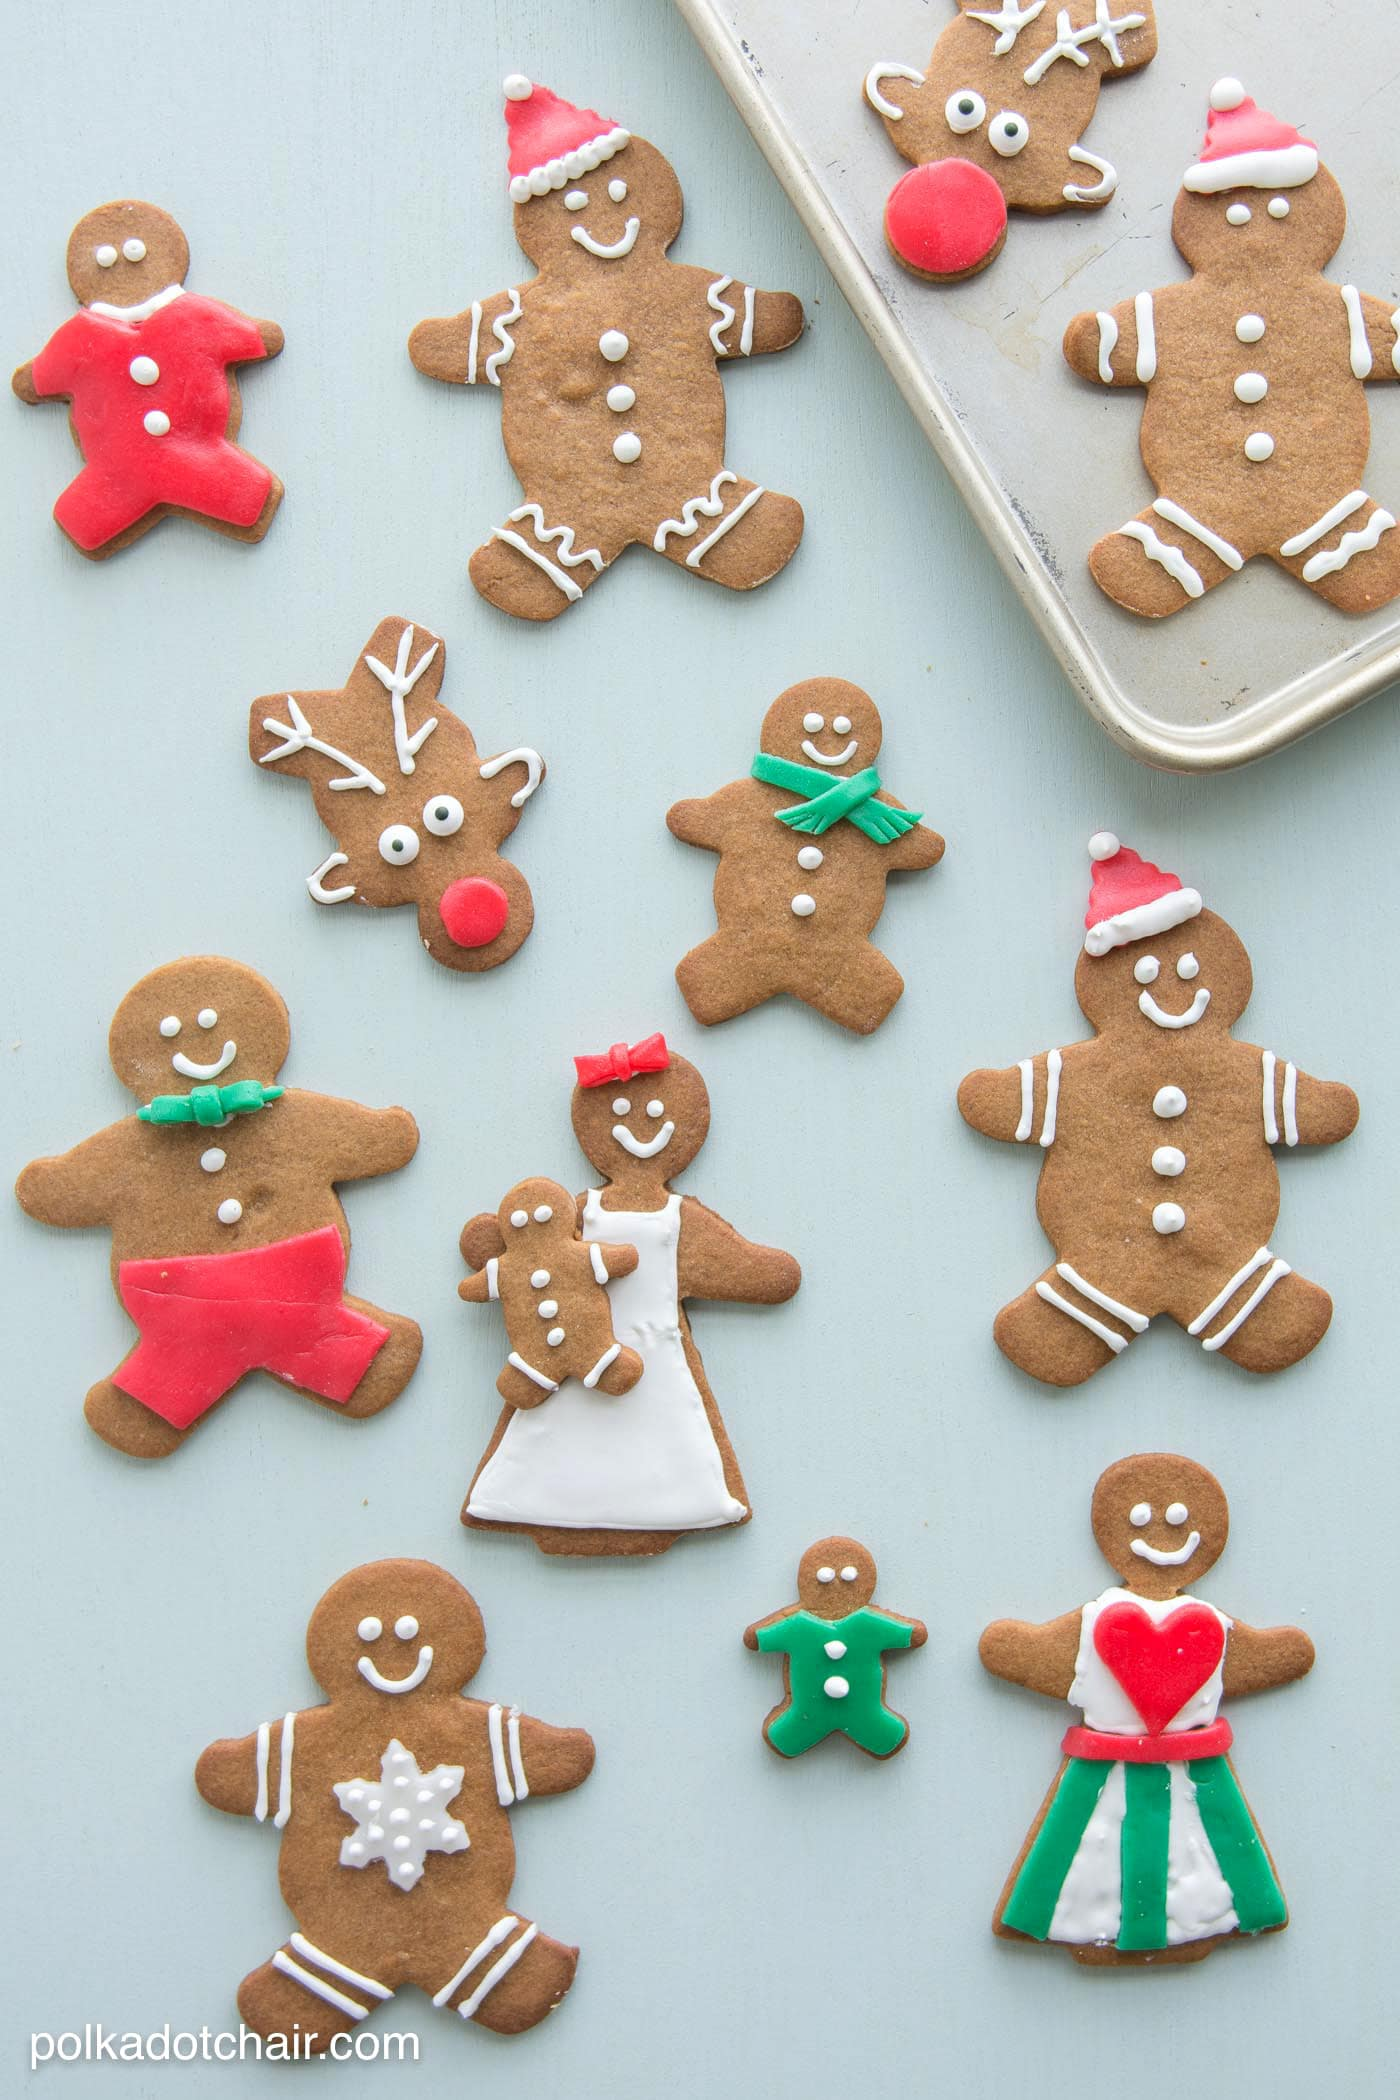 Gingerbread Cookie Decorating Ideas The Polka Dot Chair